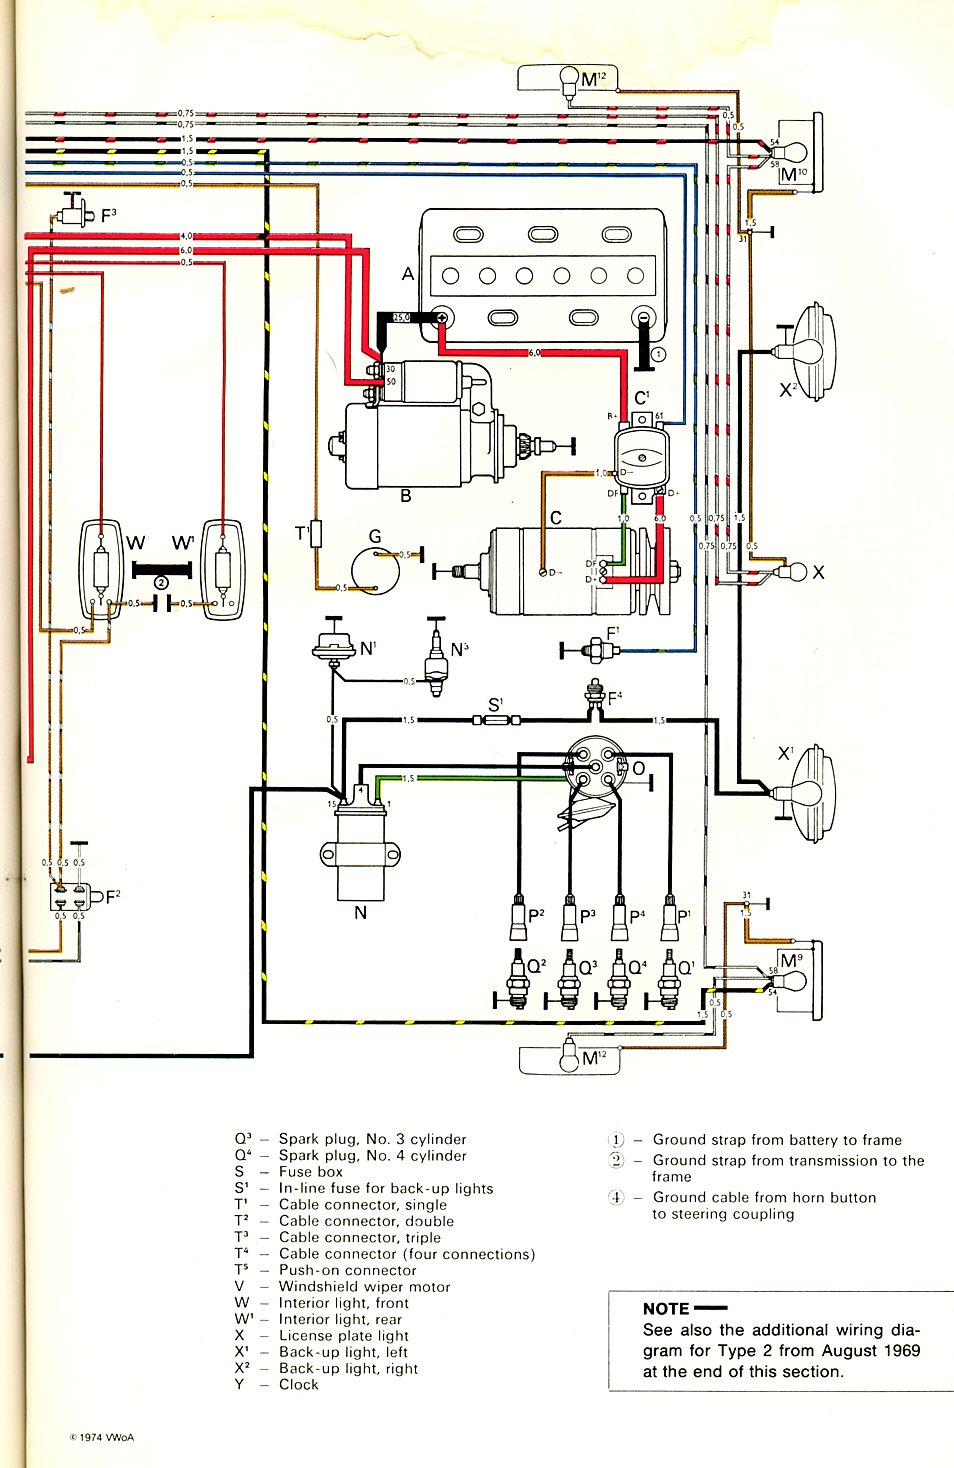 baybus_70b thesamba com type 2 wiring diagrams  at honlapkeszites.co